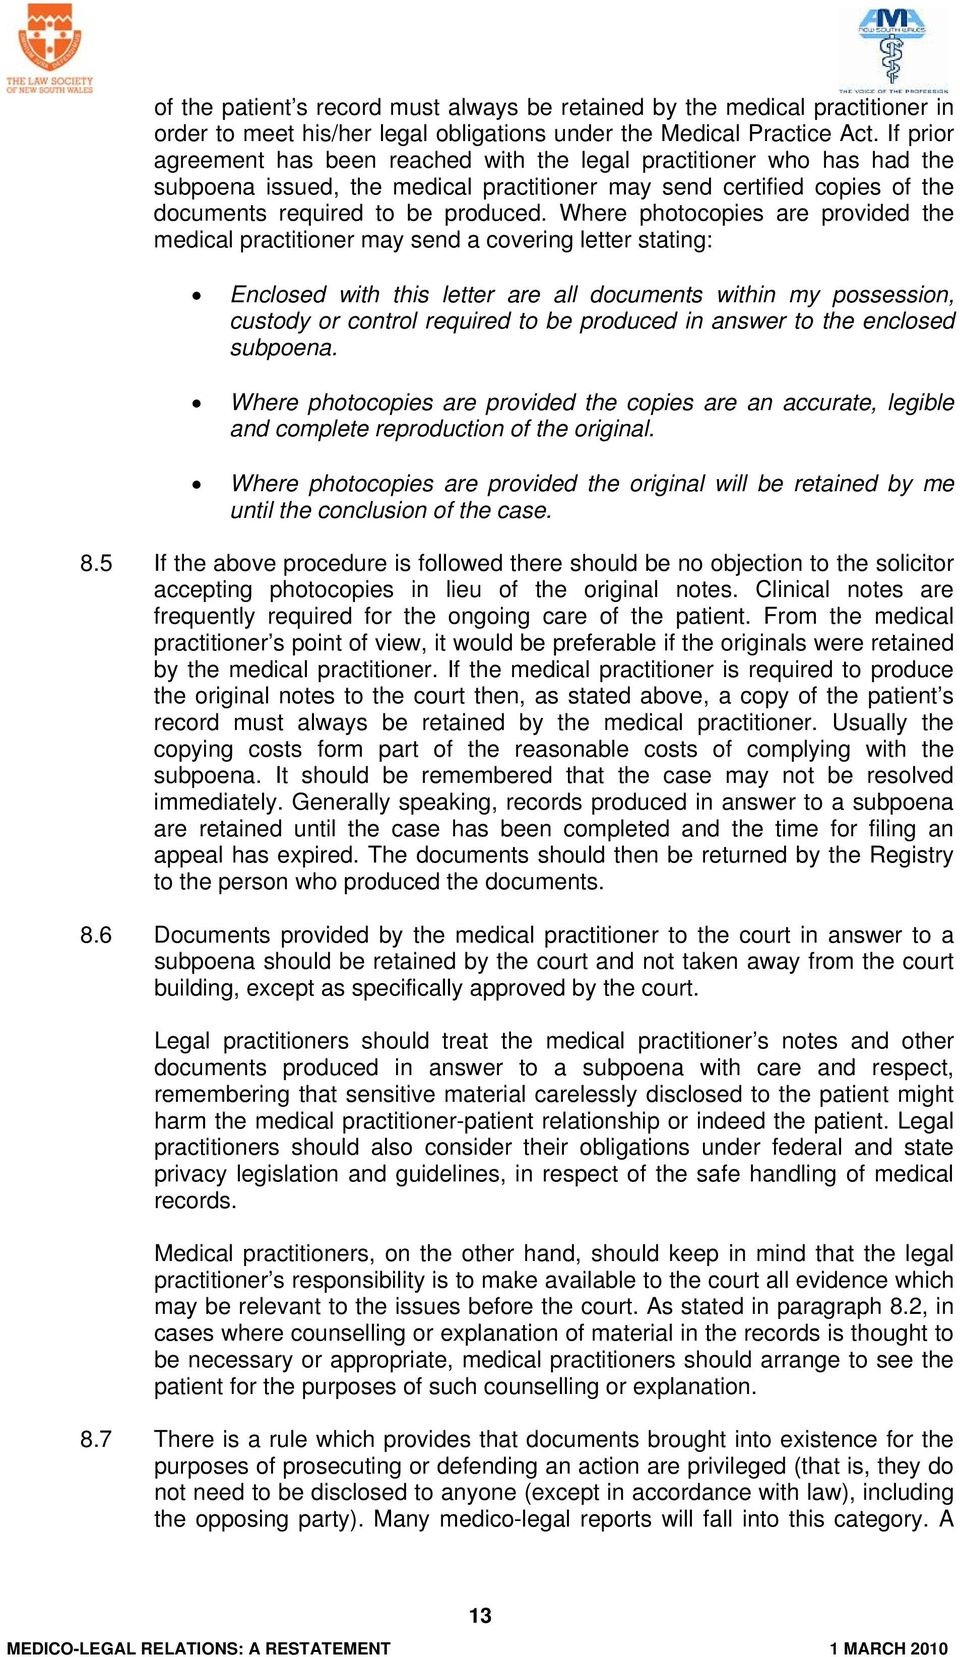 Where photocopies are provided the medical practitioner may send a covering letter stating: Enclosed with this letter are all documents within my possession, custody or control required to be